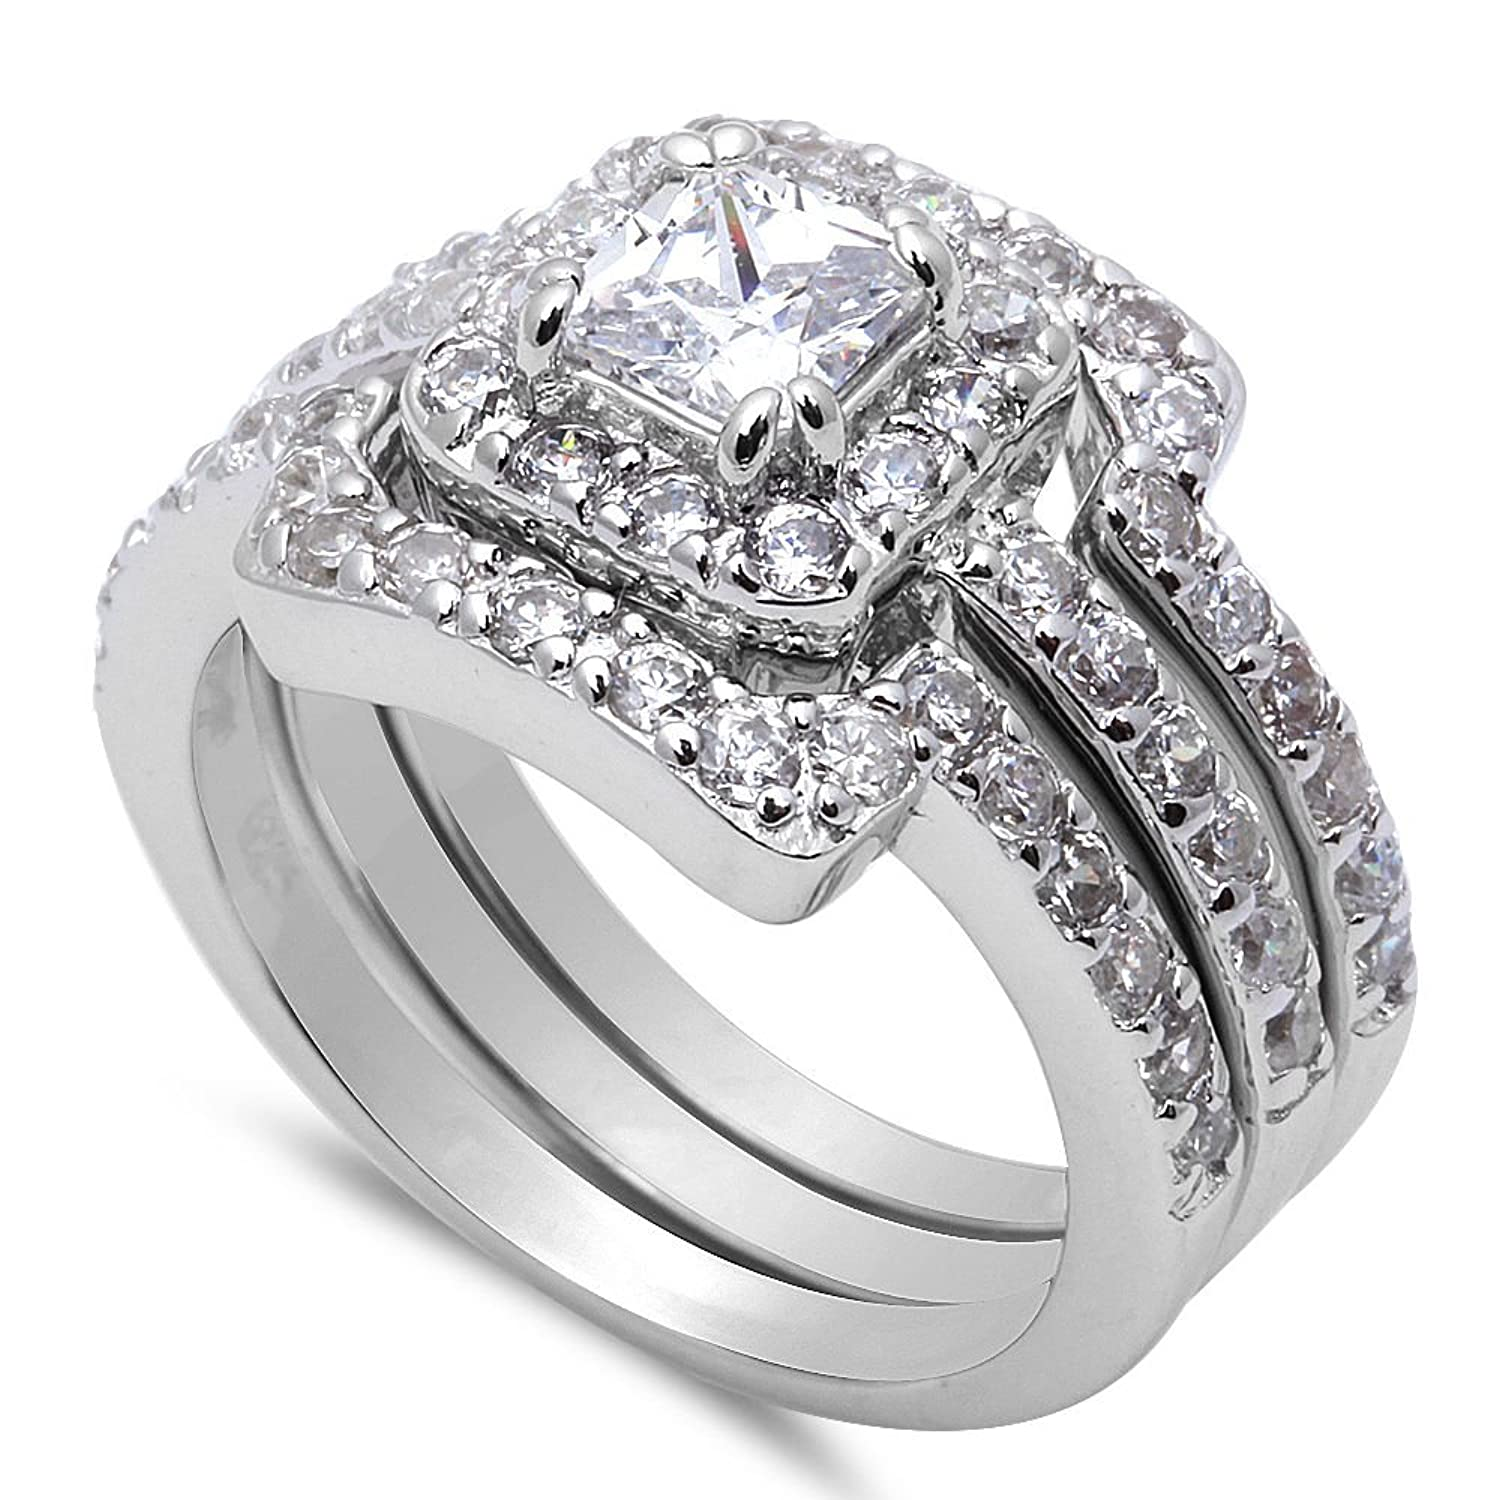 Wonderful Amazon.com: 3 Piece Engagement Bridal Set .925 Sterling Silver Ring Sizes  4 12: Jewelry